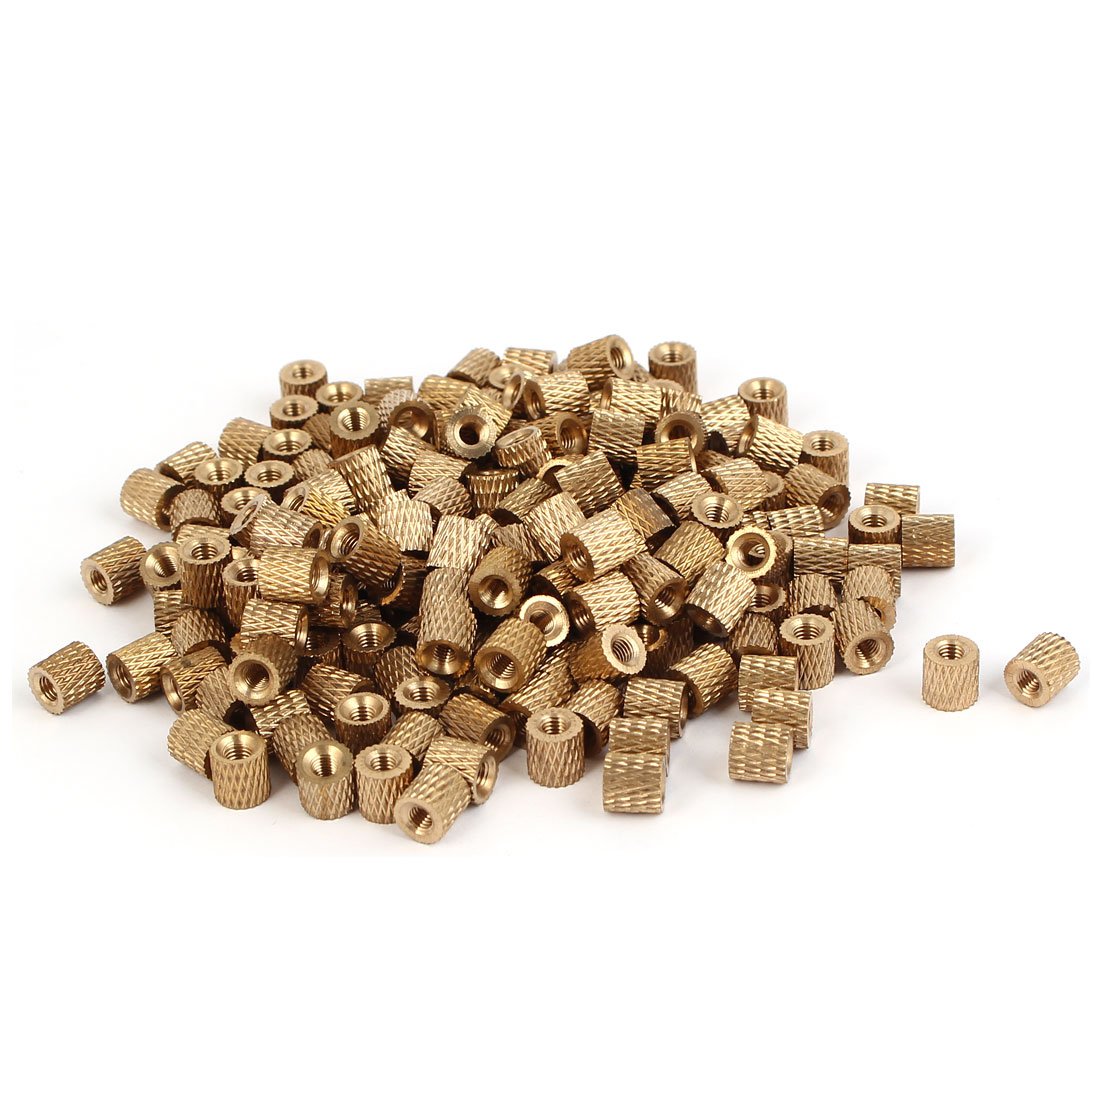 M3 x 6mm Brass Cylindrical Injection Molding Knurled Insert Embedded Nuts 200PCS